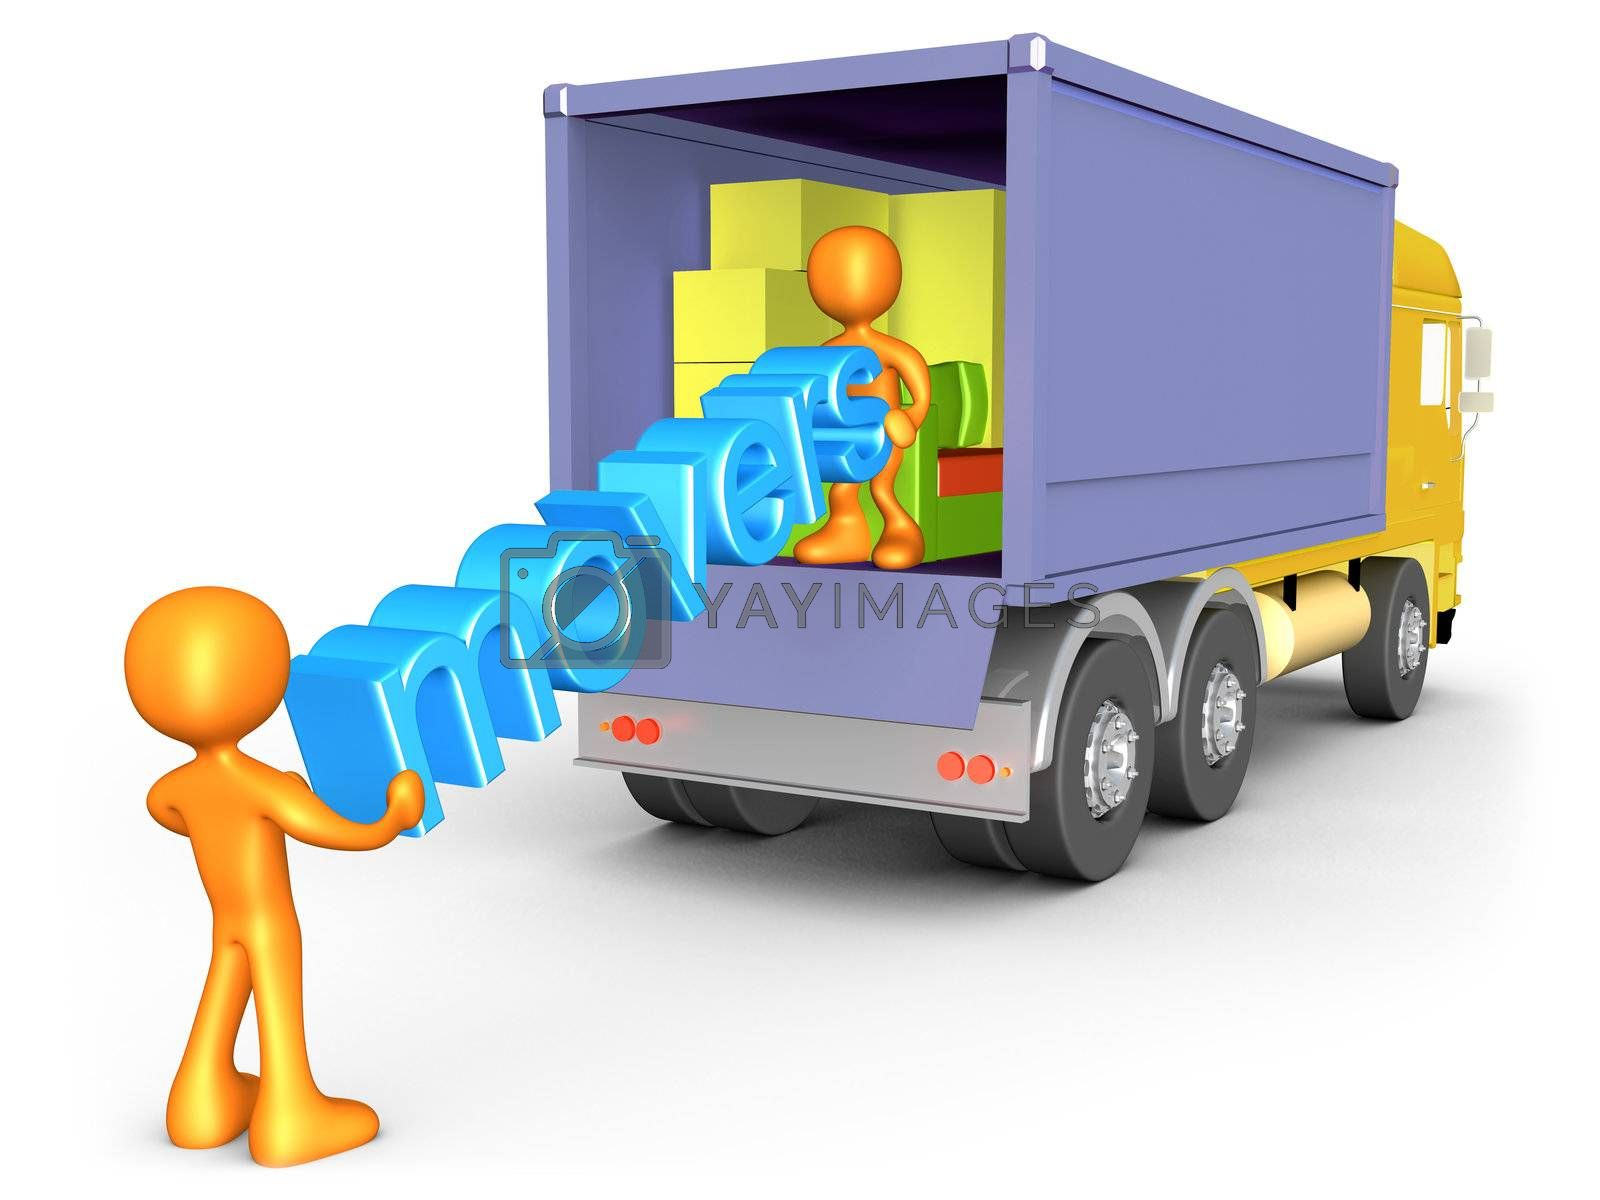 Movers by 3pod